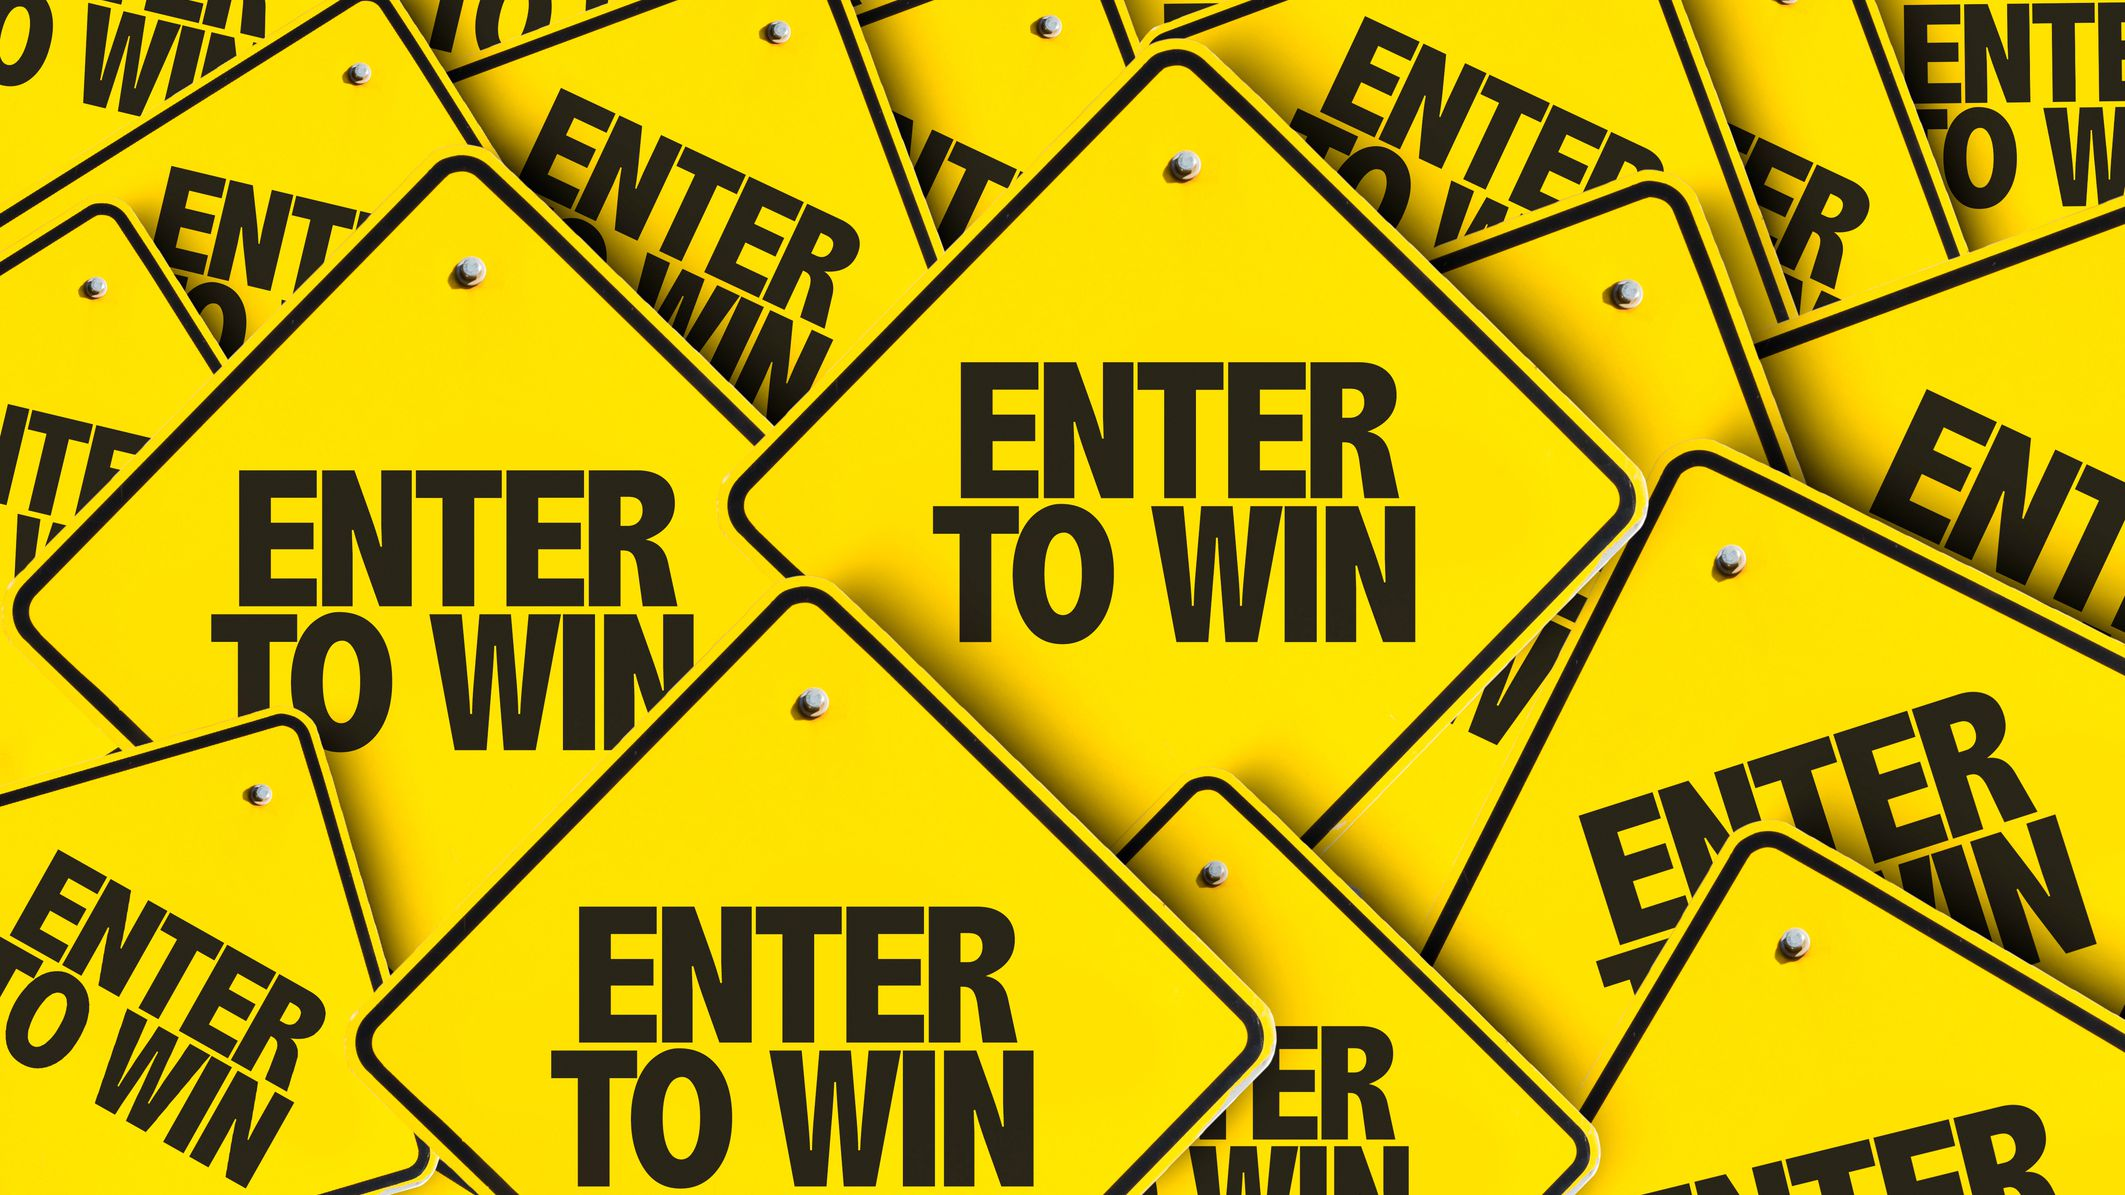 Find the Type of Sweepstakes You Like Best